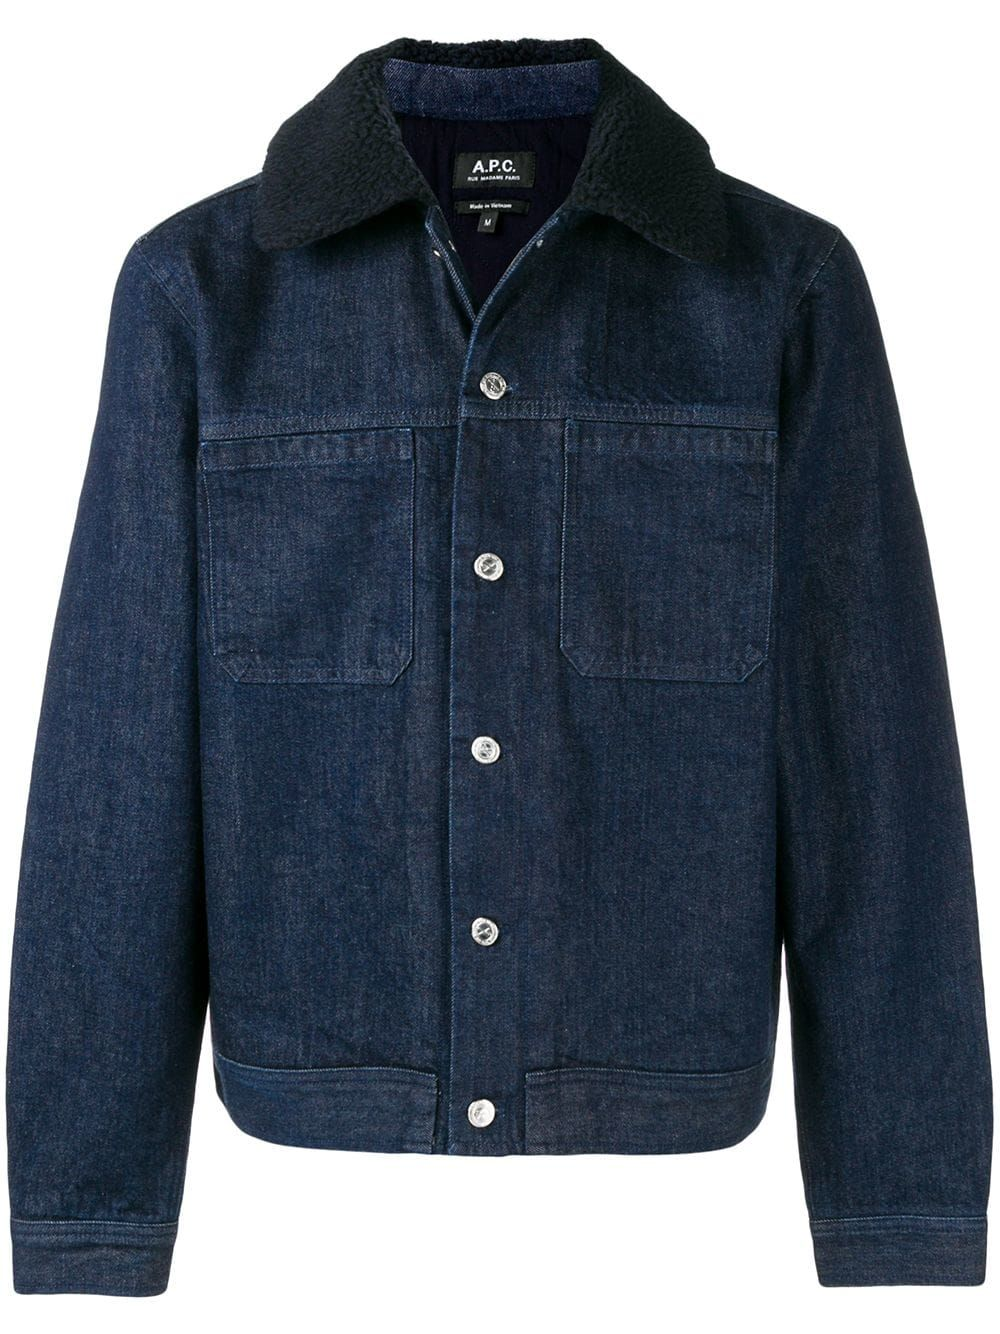 1d26989fe2a A.P.C. A.P.C. DENIM JACKET - BLUE.  a.p.c.  cloth